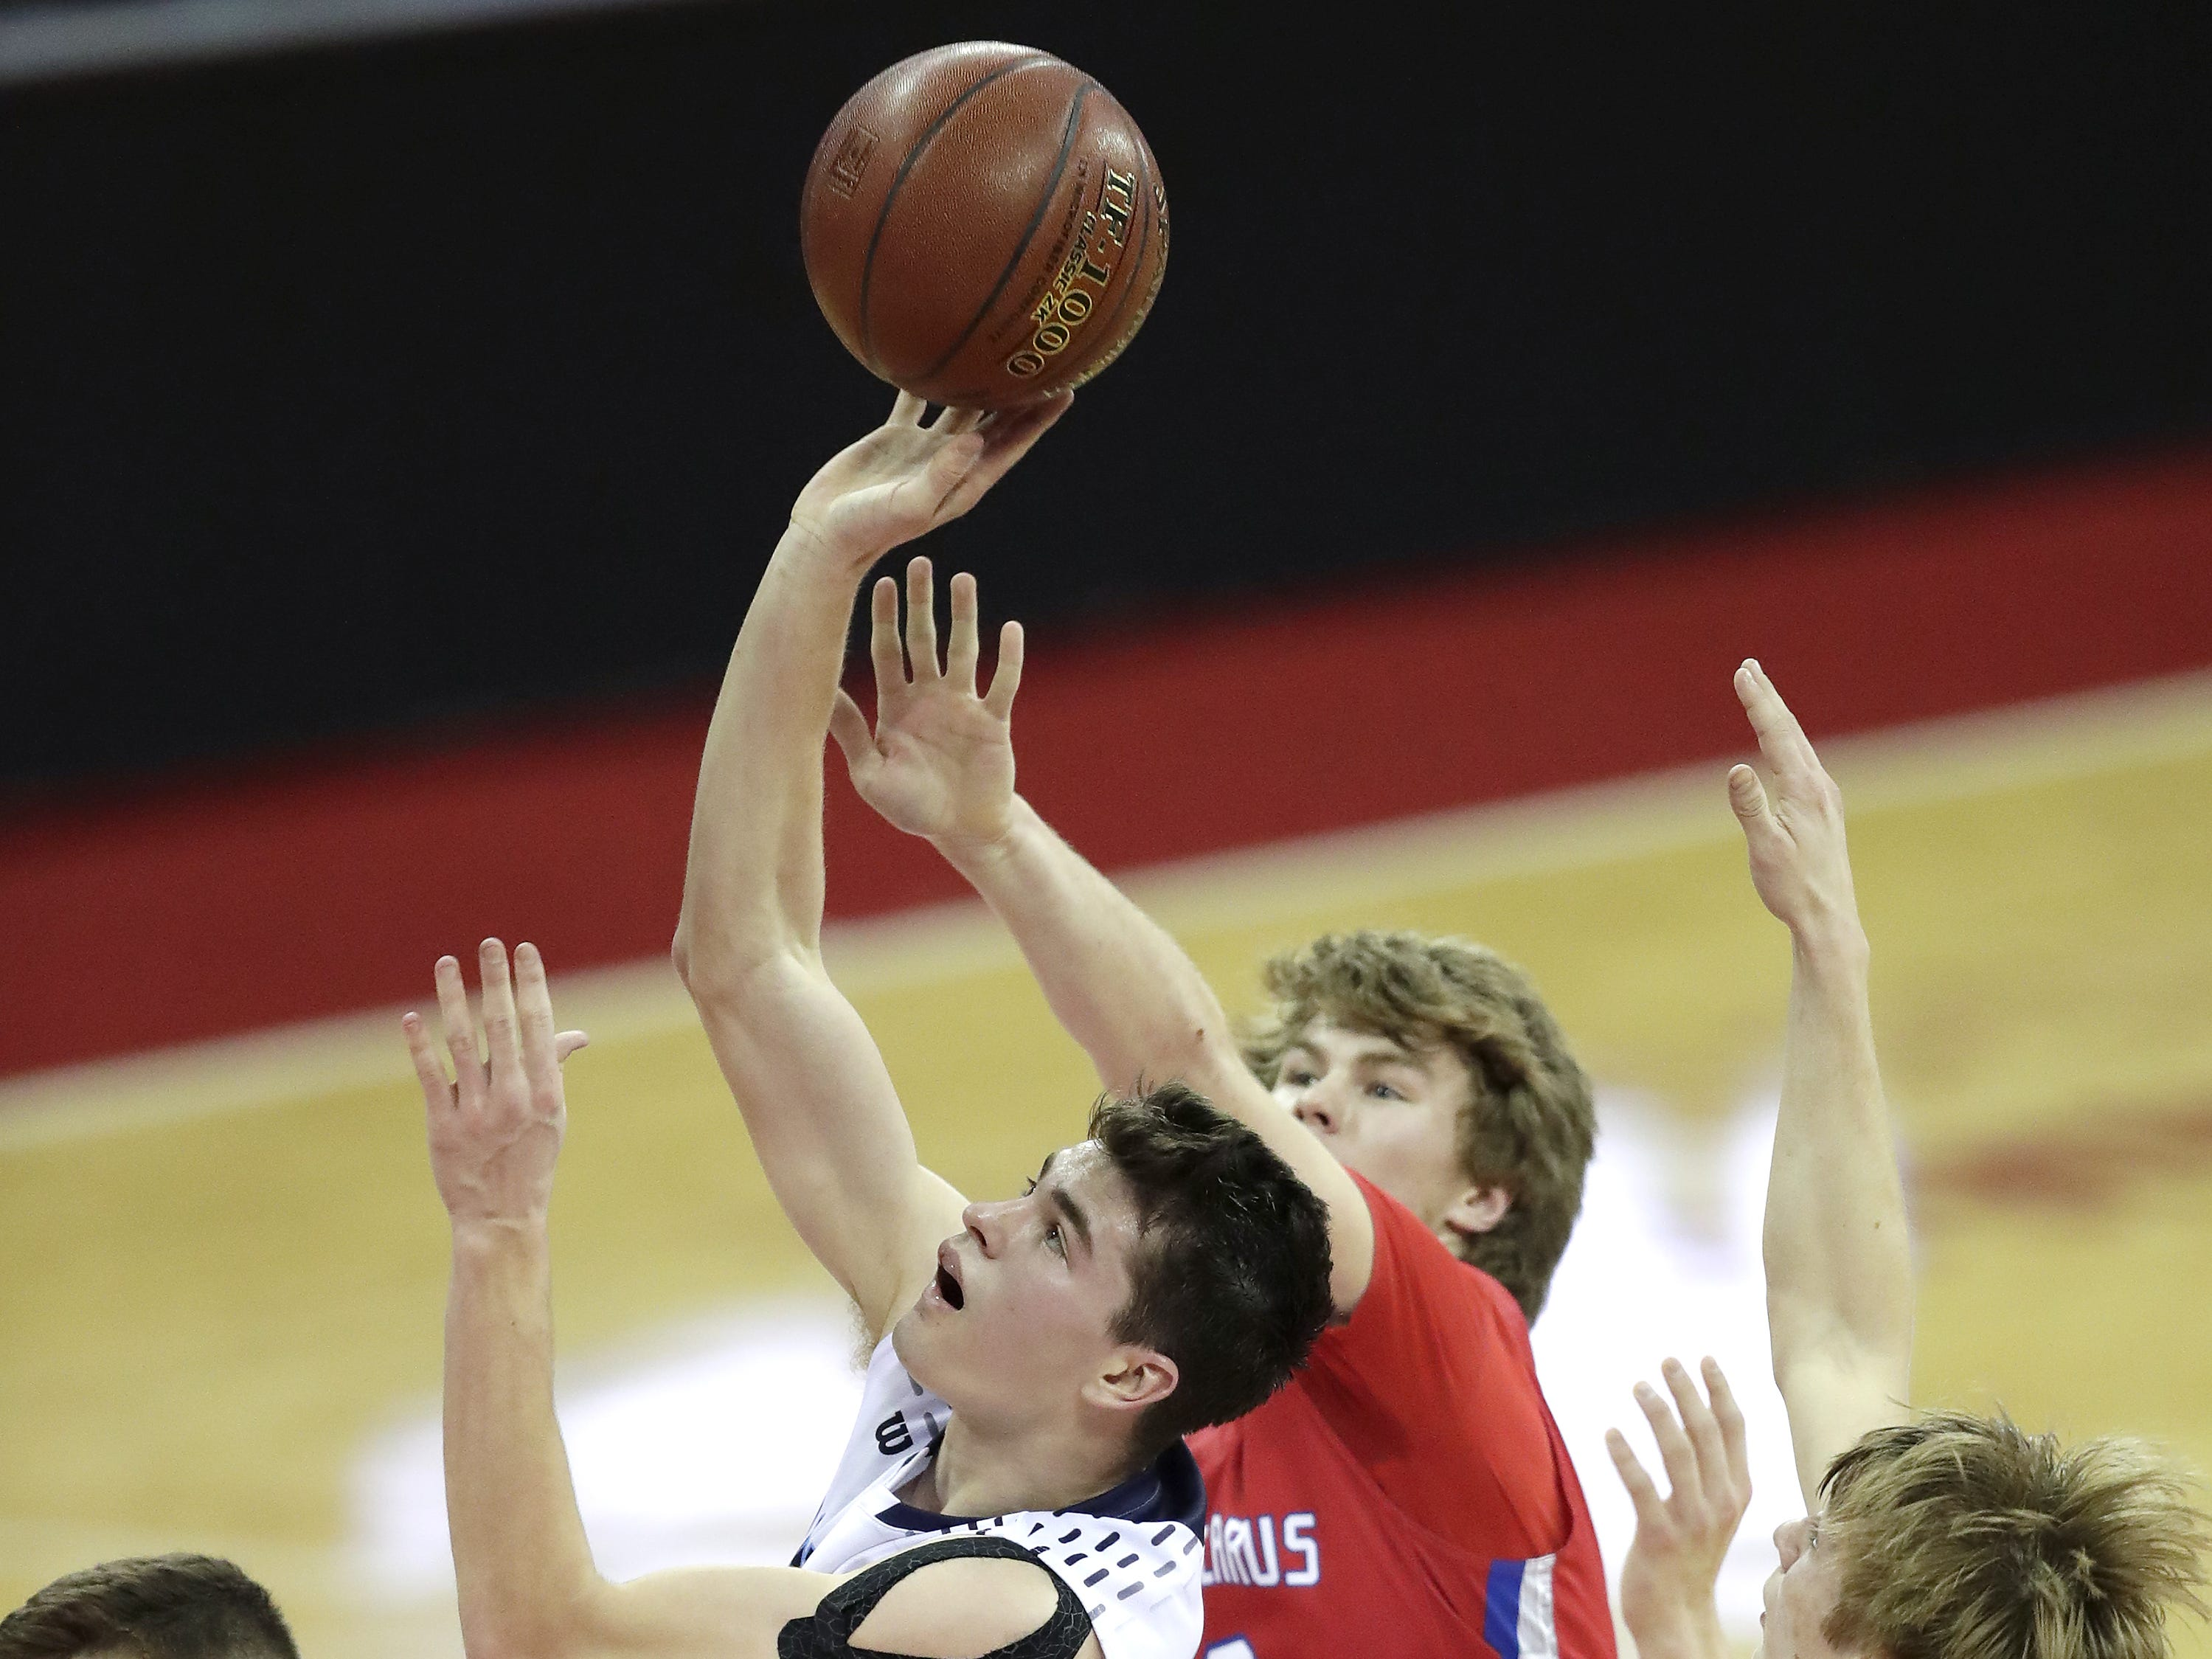 Roncalli High School's #34 Ian Behringer against New Glarus High Schoo during their WIAA Division 4 boys basketball state semifinal on Thursday, March 14, 2019, at the KohlCenter in Madison, Wis. New Glarus defeated Roncalli 44 to 41. Wm. Glasheen/USA TODAY NETWORK-Wisconsin.